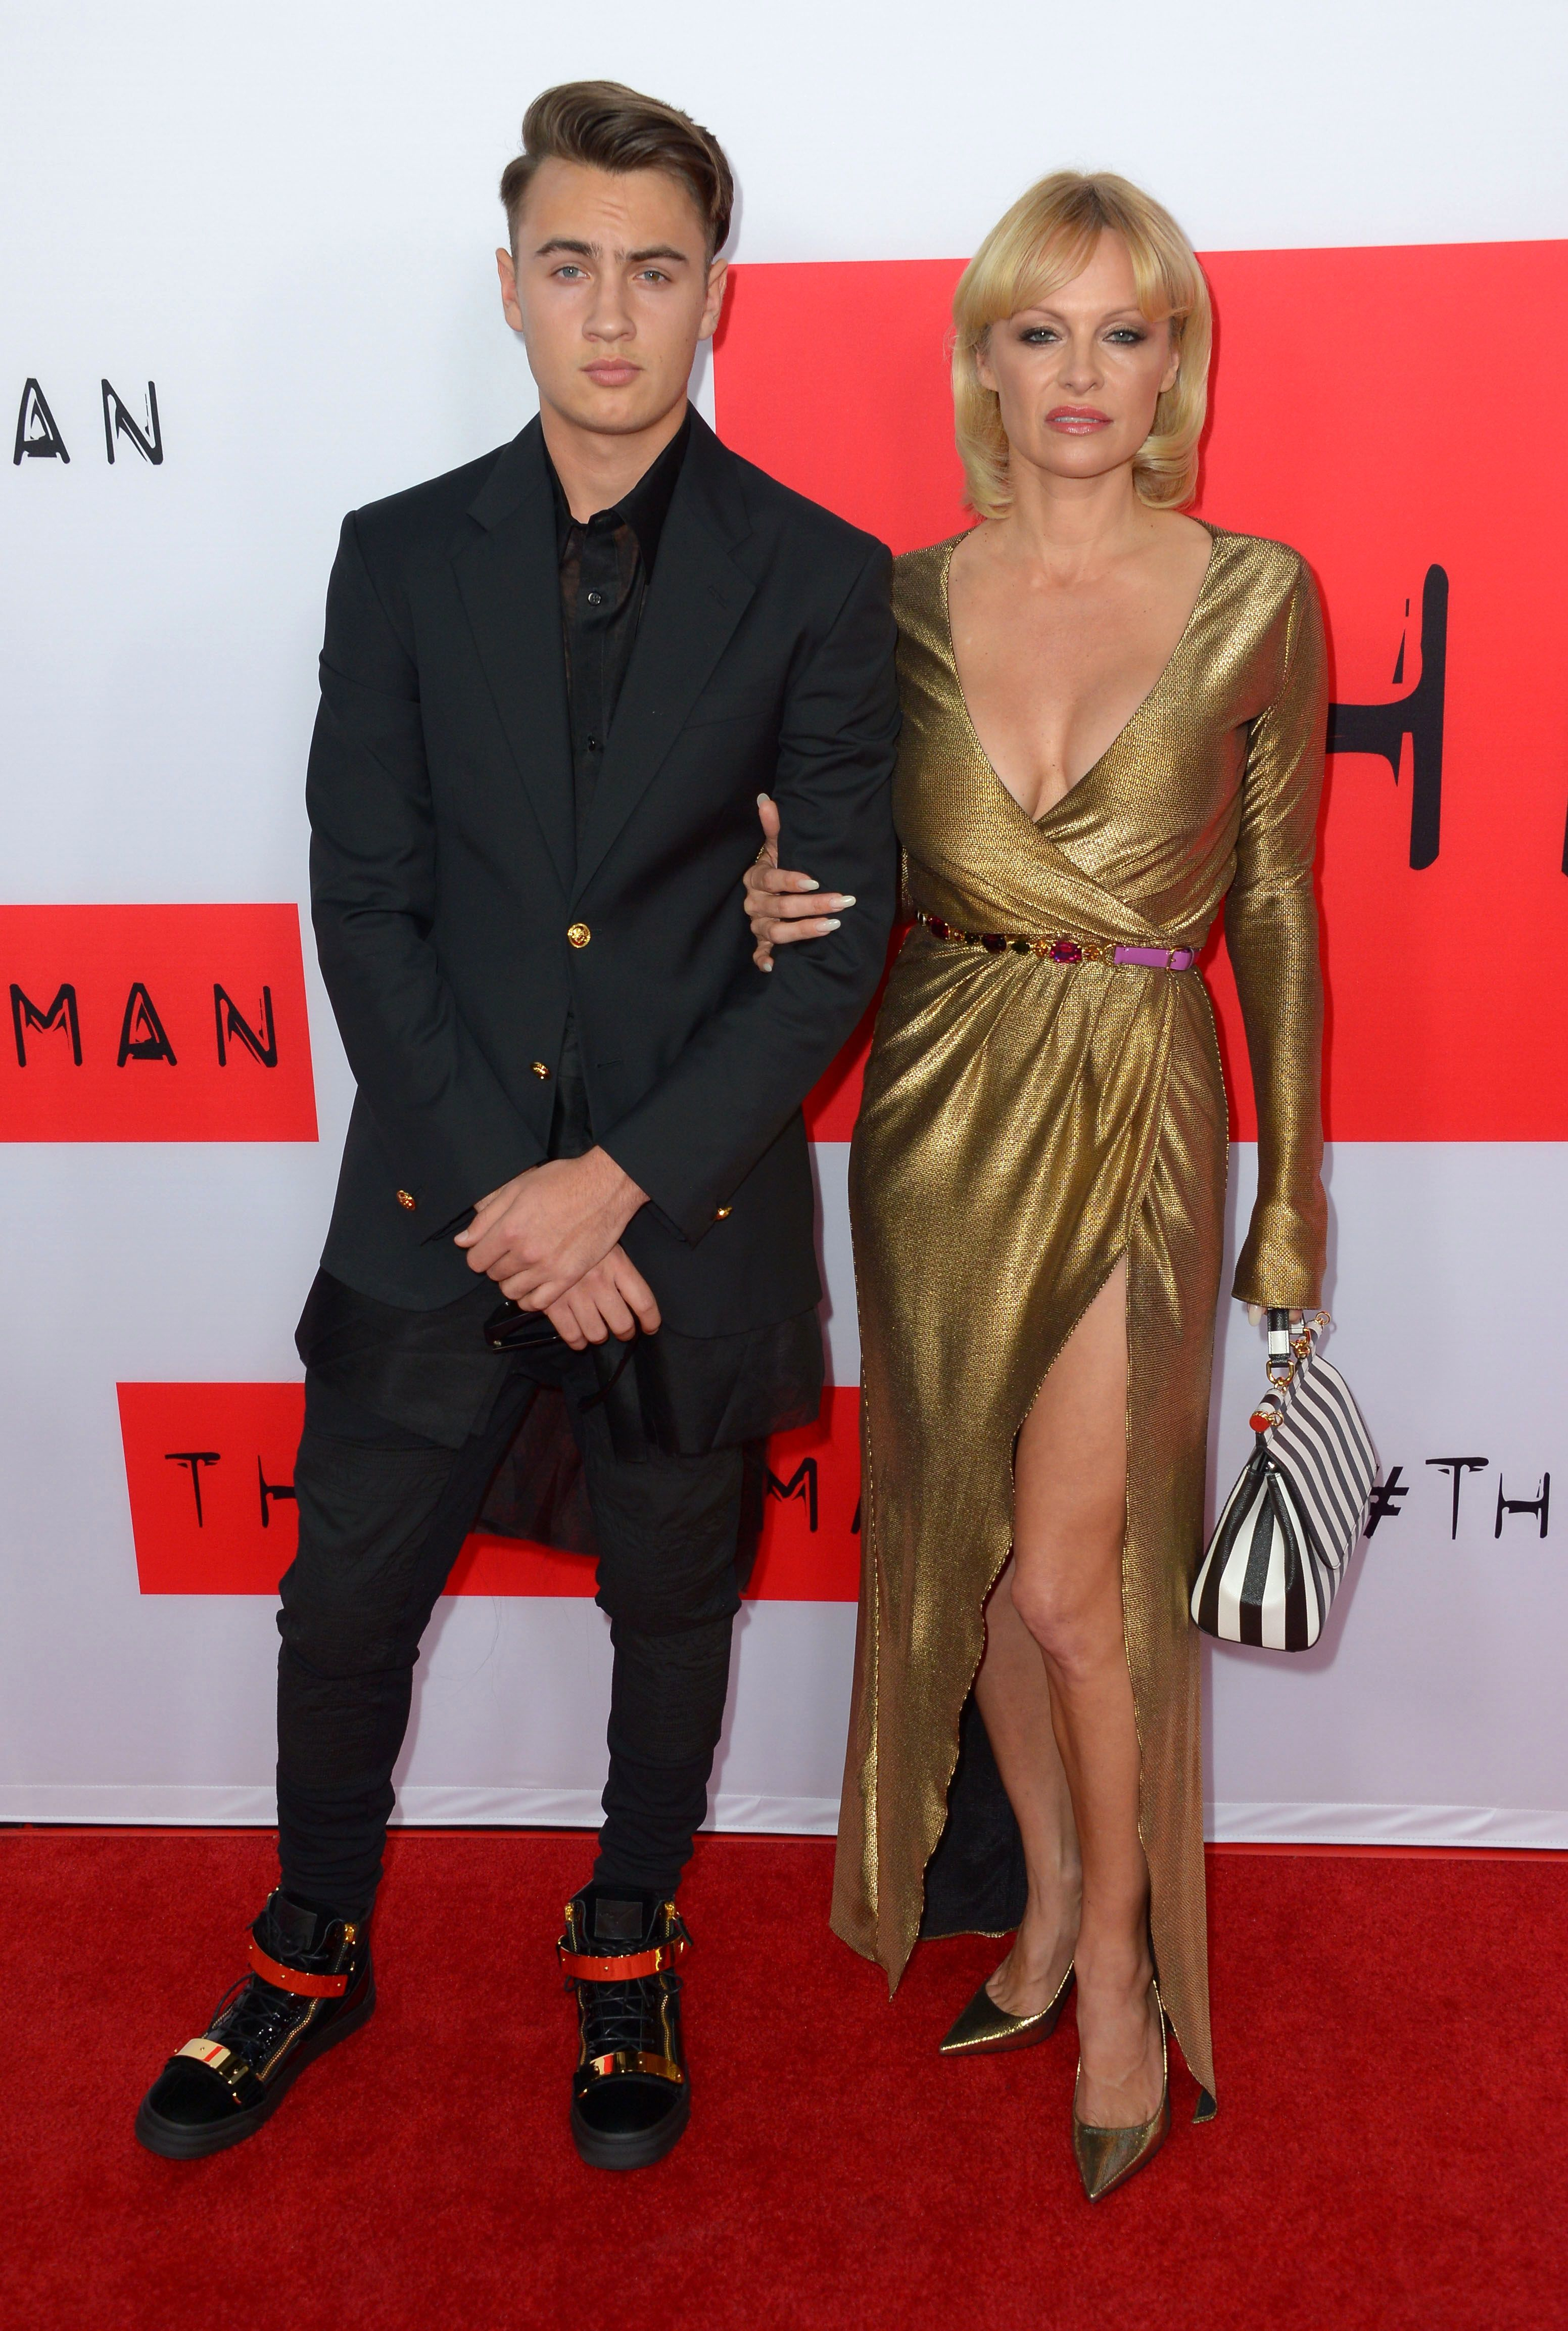 pam anderson son